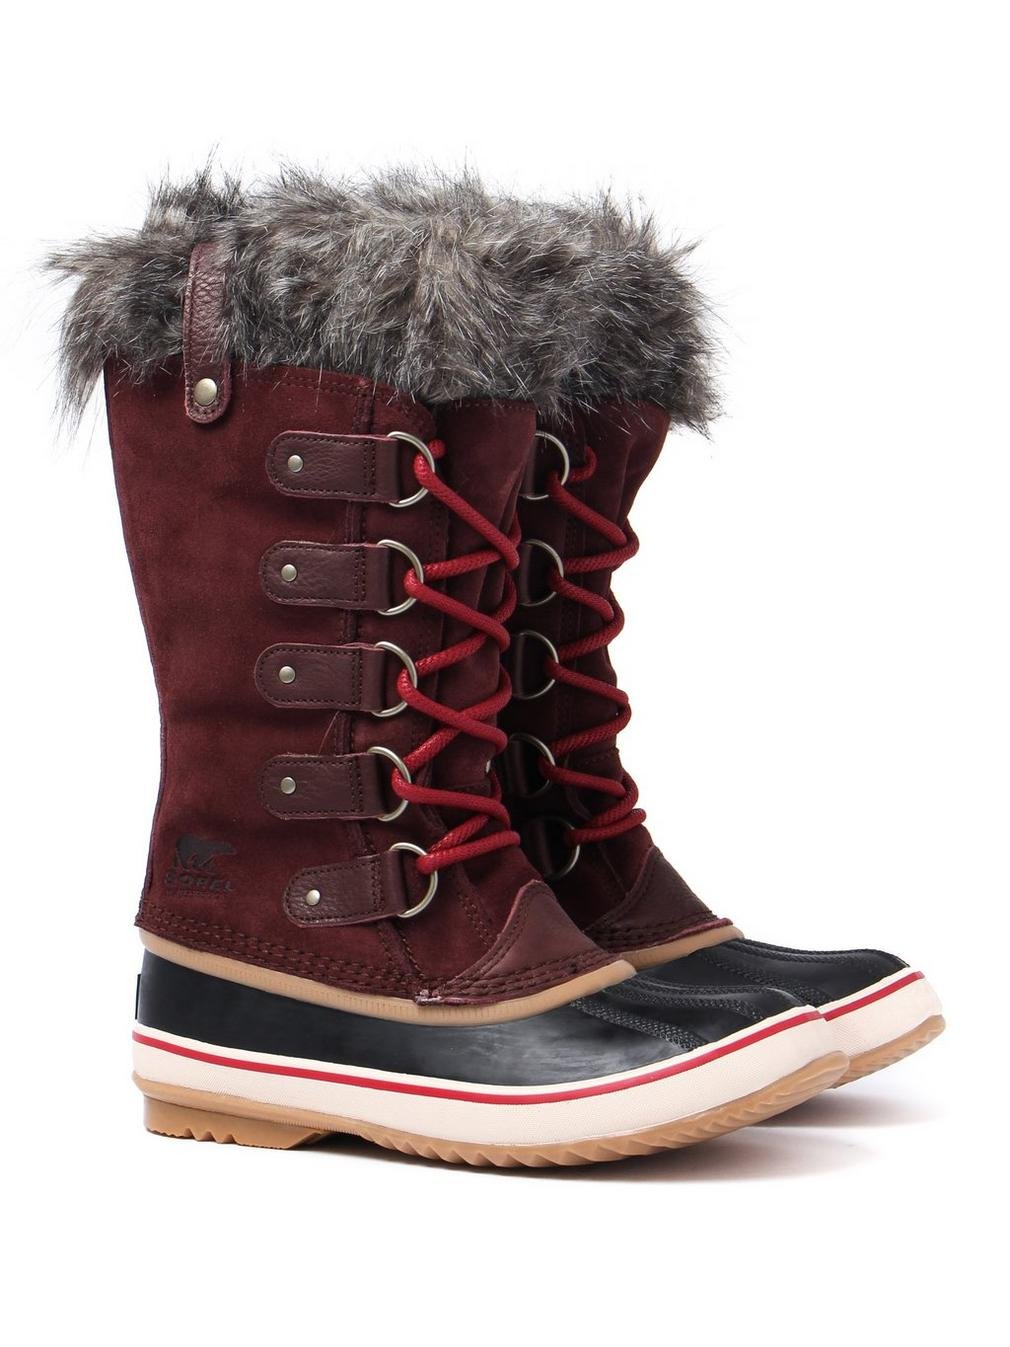 Sorel Joan Of Artic Womens B01NCLVHXC 9.5 B(M) US|Redwood / Red Element Redwood / Red Element 9.5 B(M) US